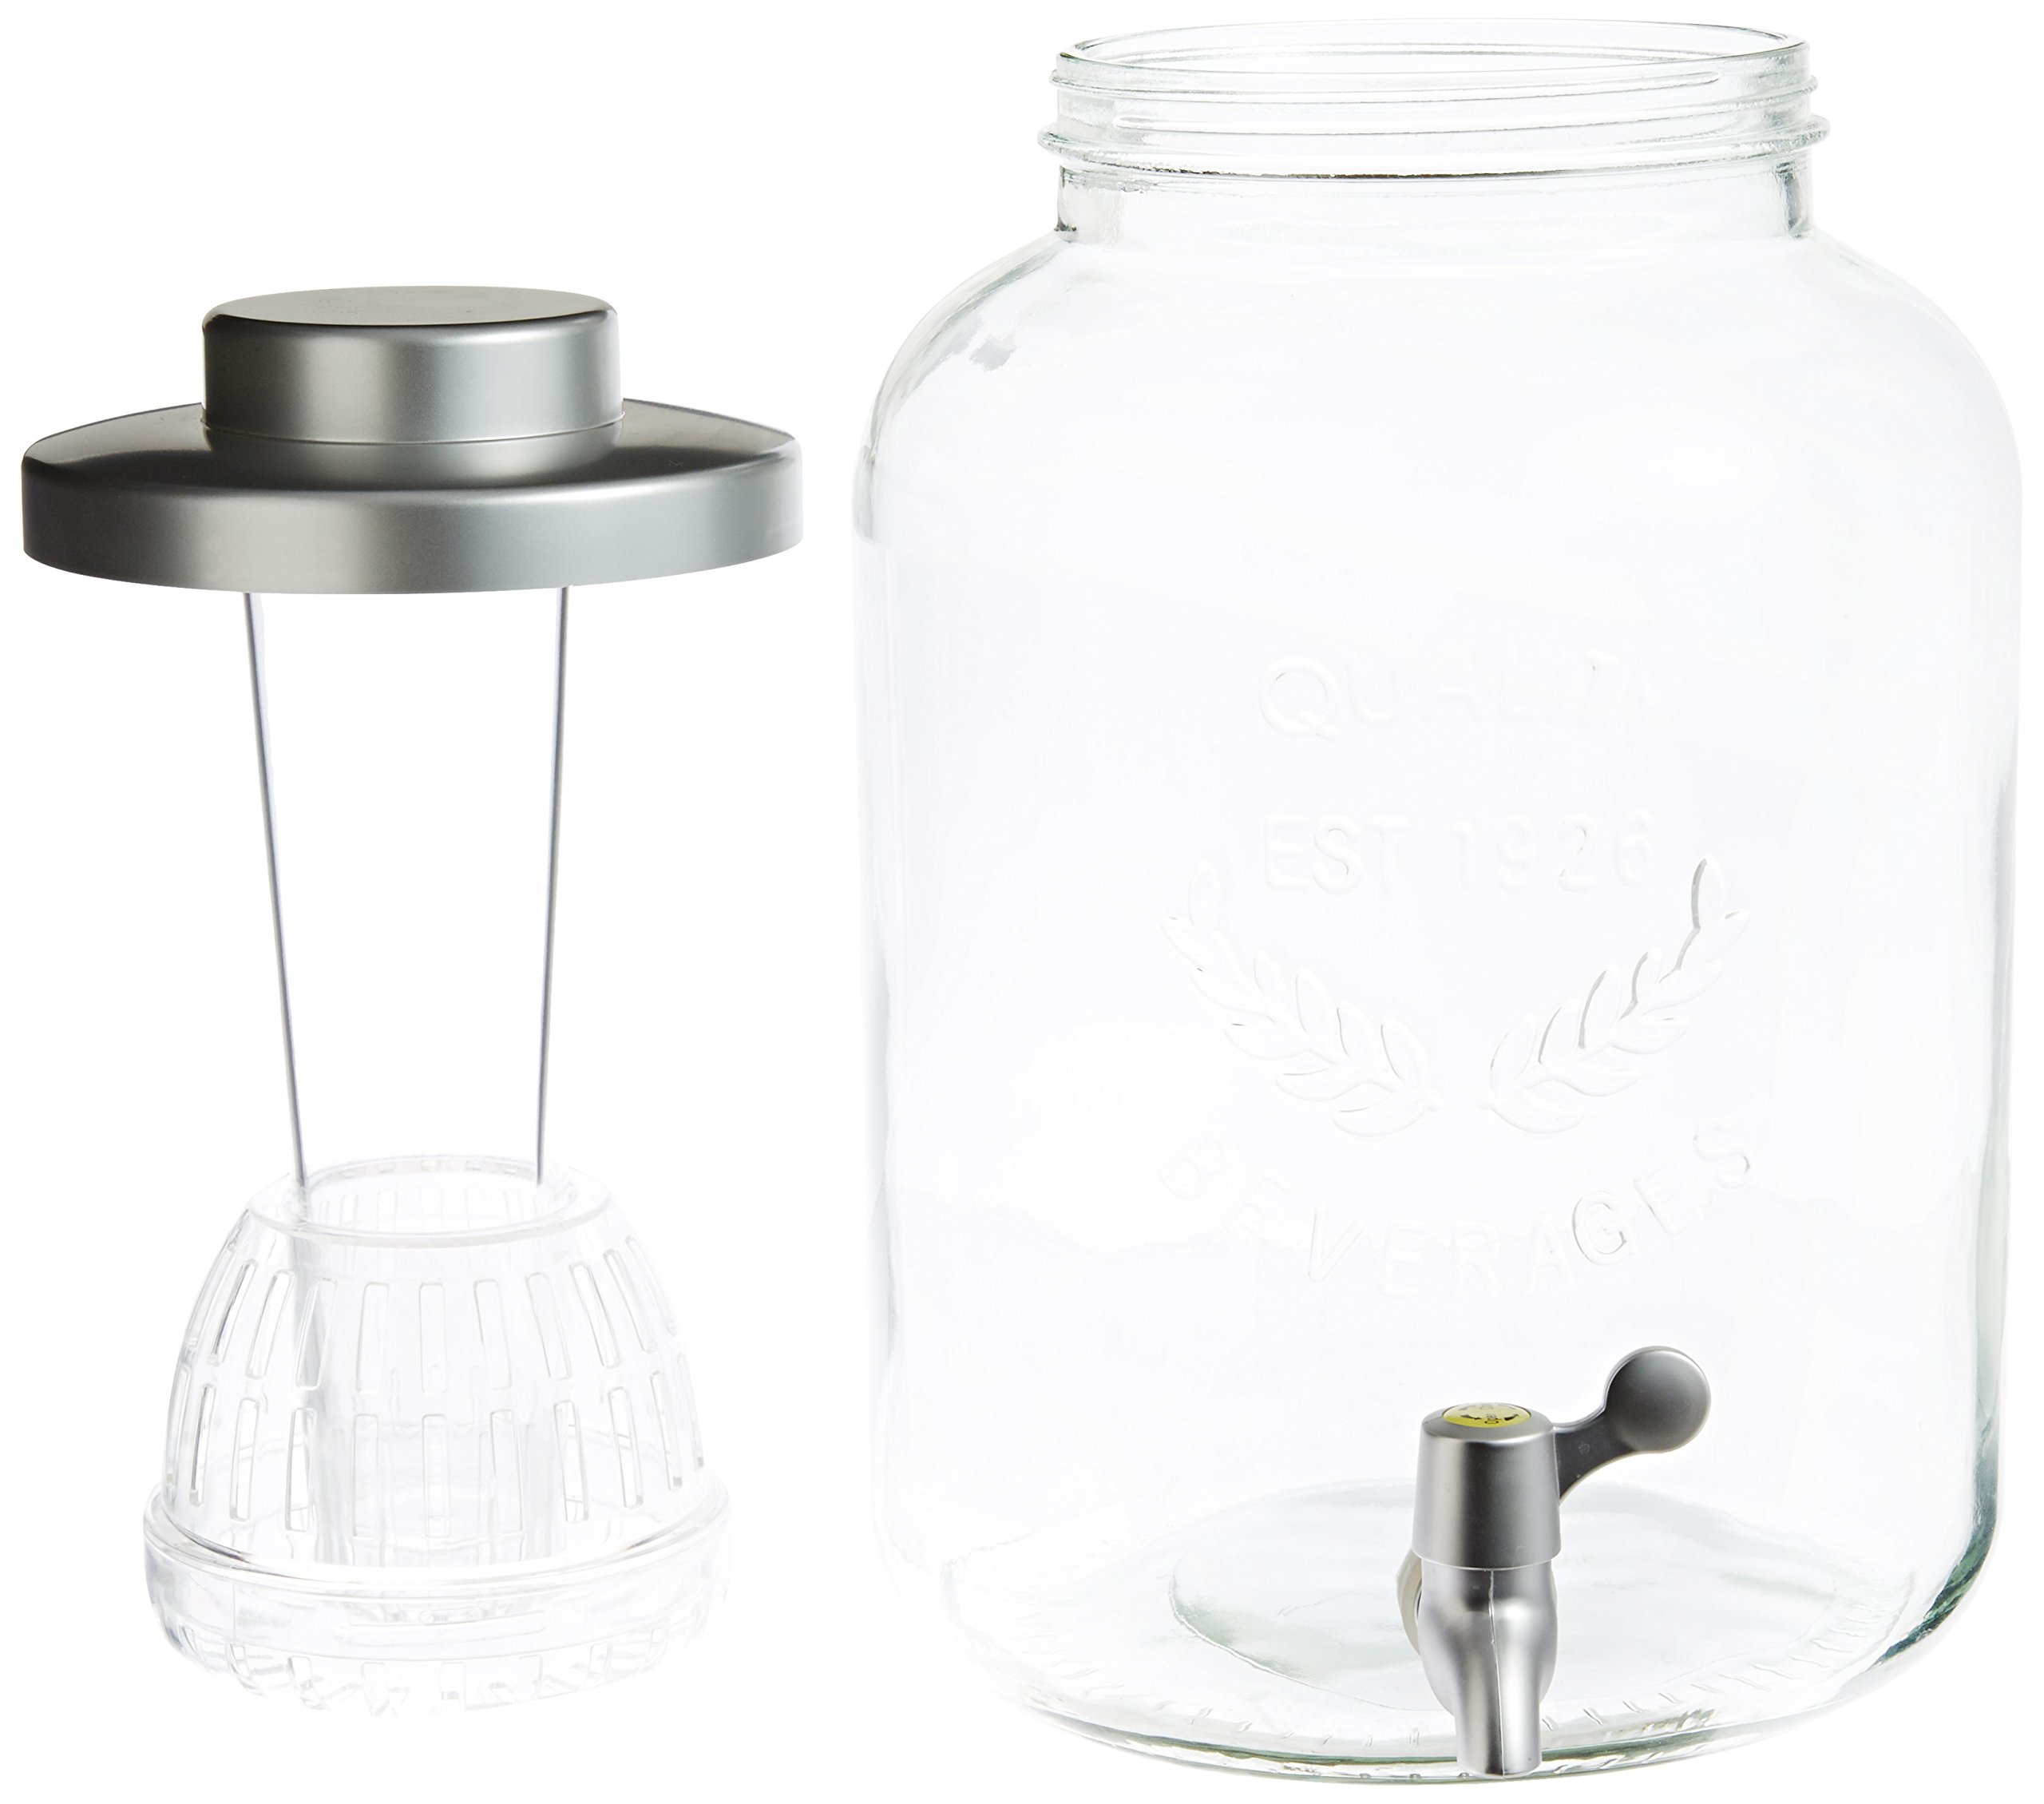 Artland Masonware Beverage Jar with Chiller and Infuser, 6 Mason Jars, Faux Wicker Stand by ARTLAND (Image #3)